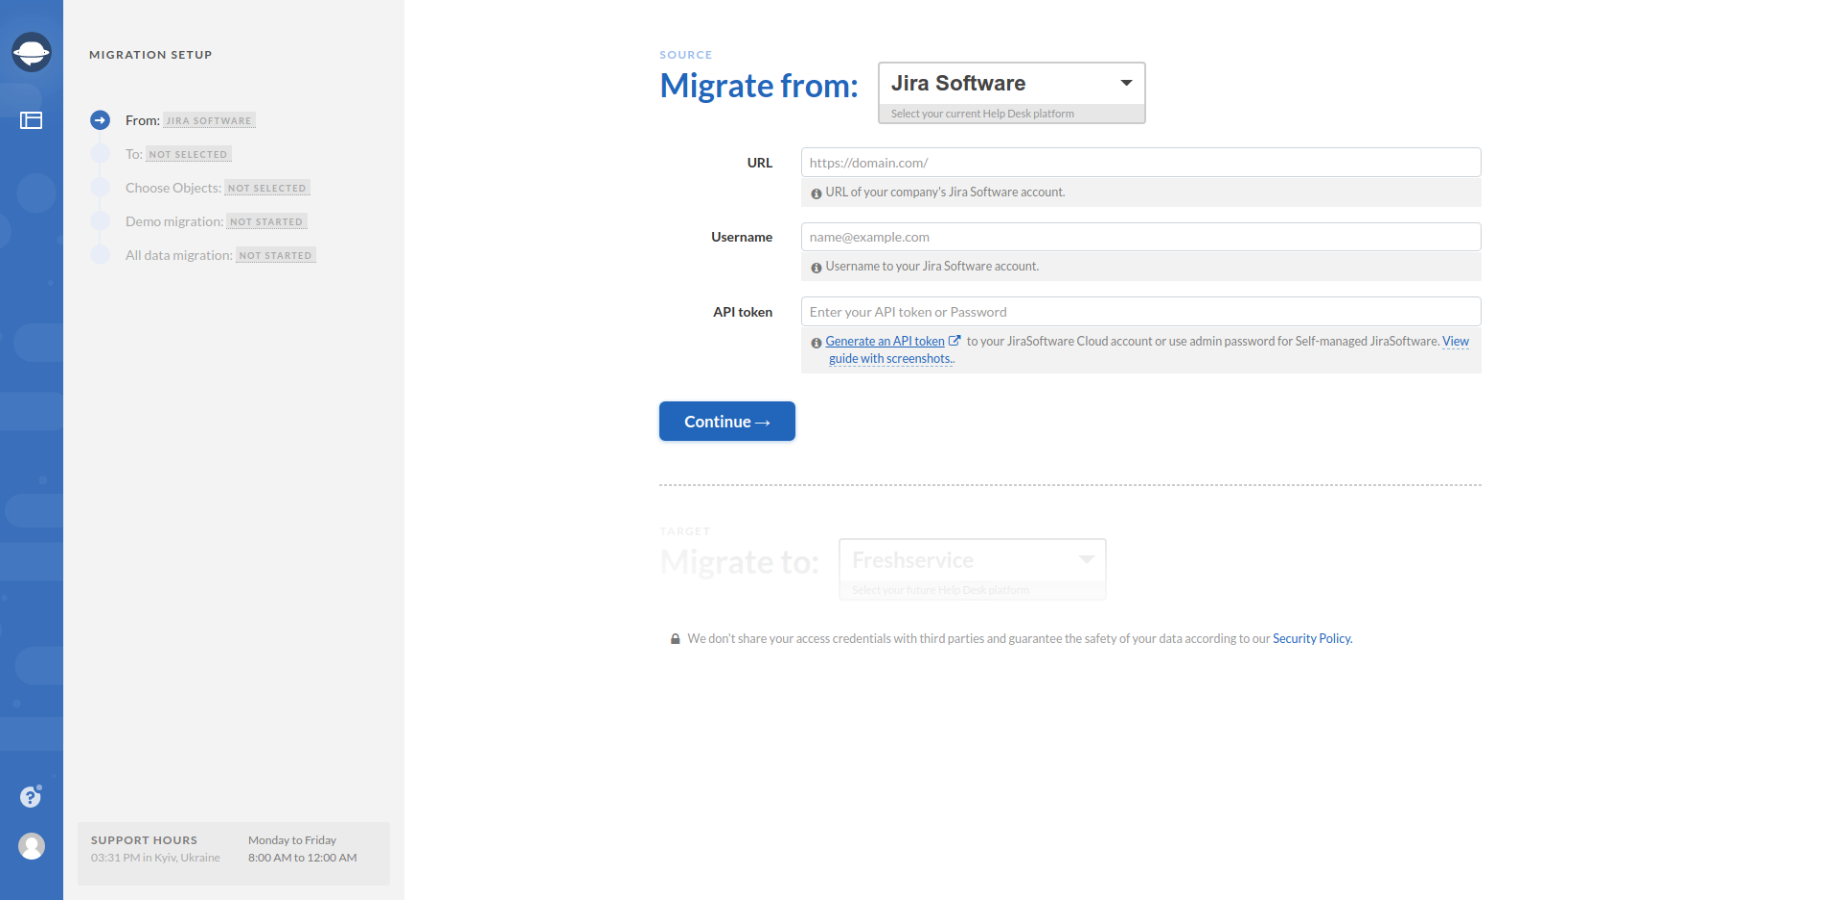 Migrate from Jira Software